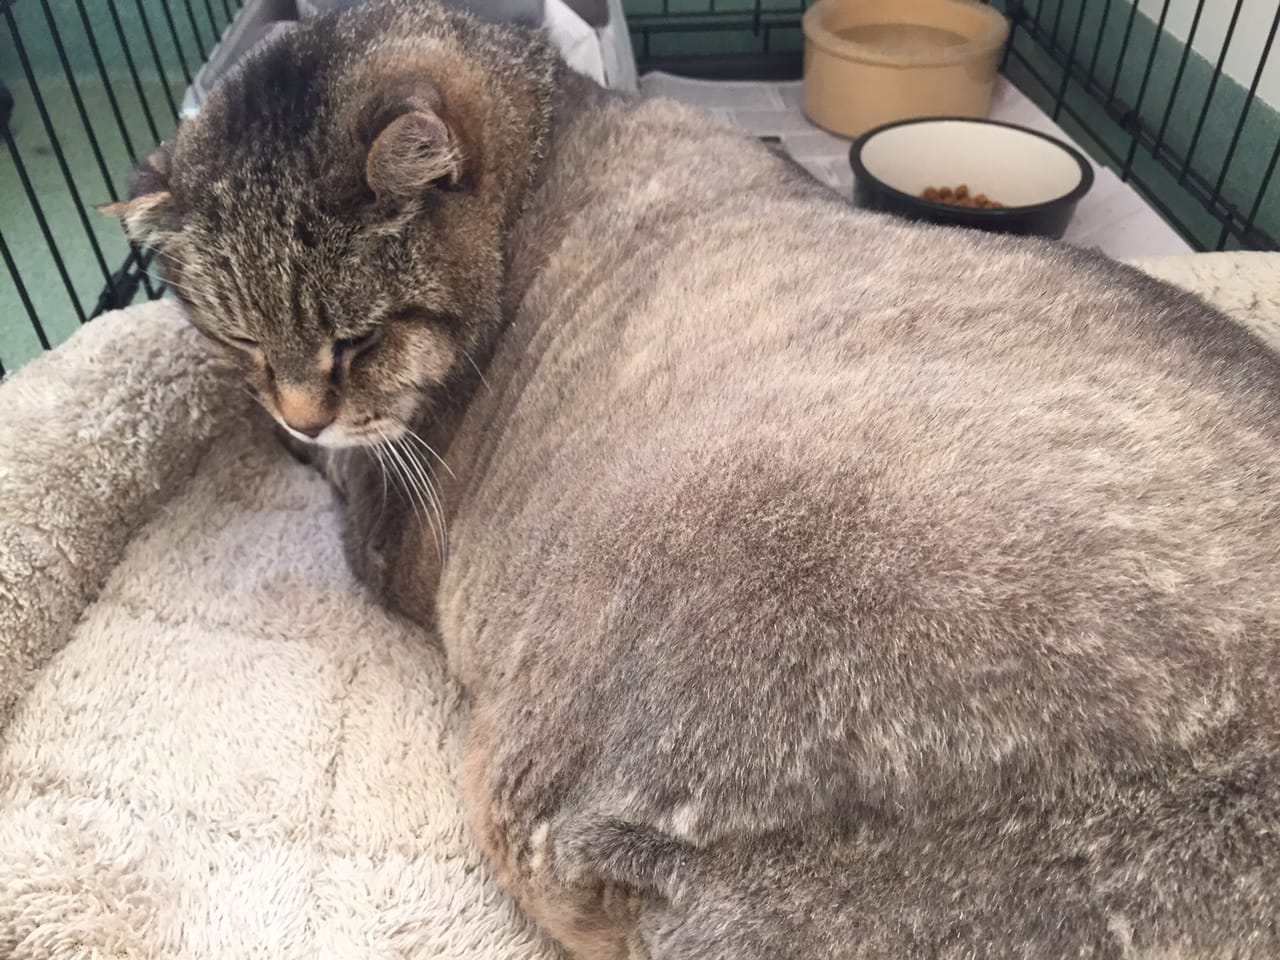 Admirable Neglected Obese Senior Cat Is Dumped In Park Life With Cats Short Hairstyles For Black Women Fulllsitofus